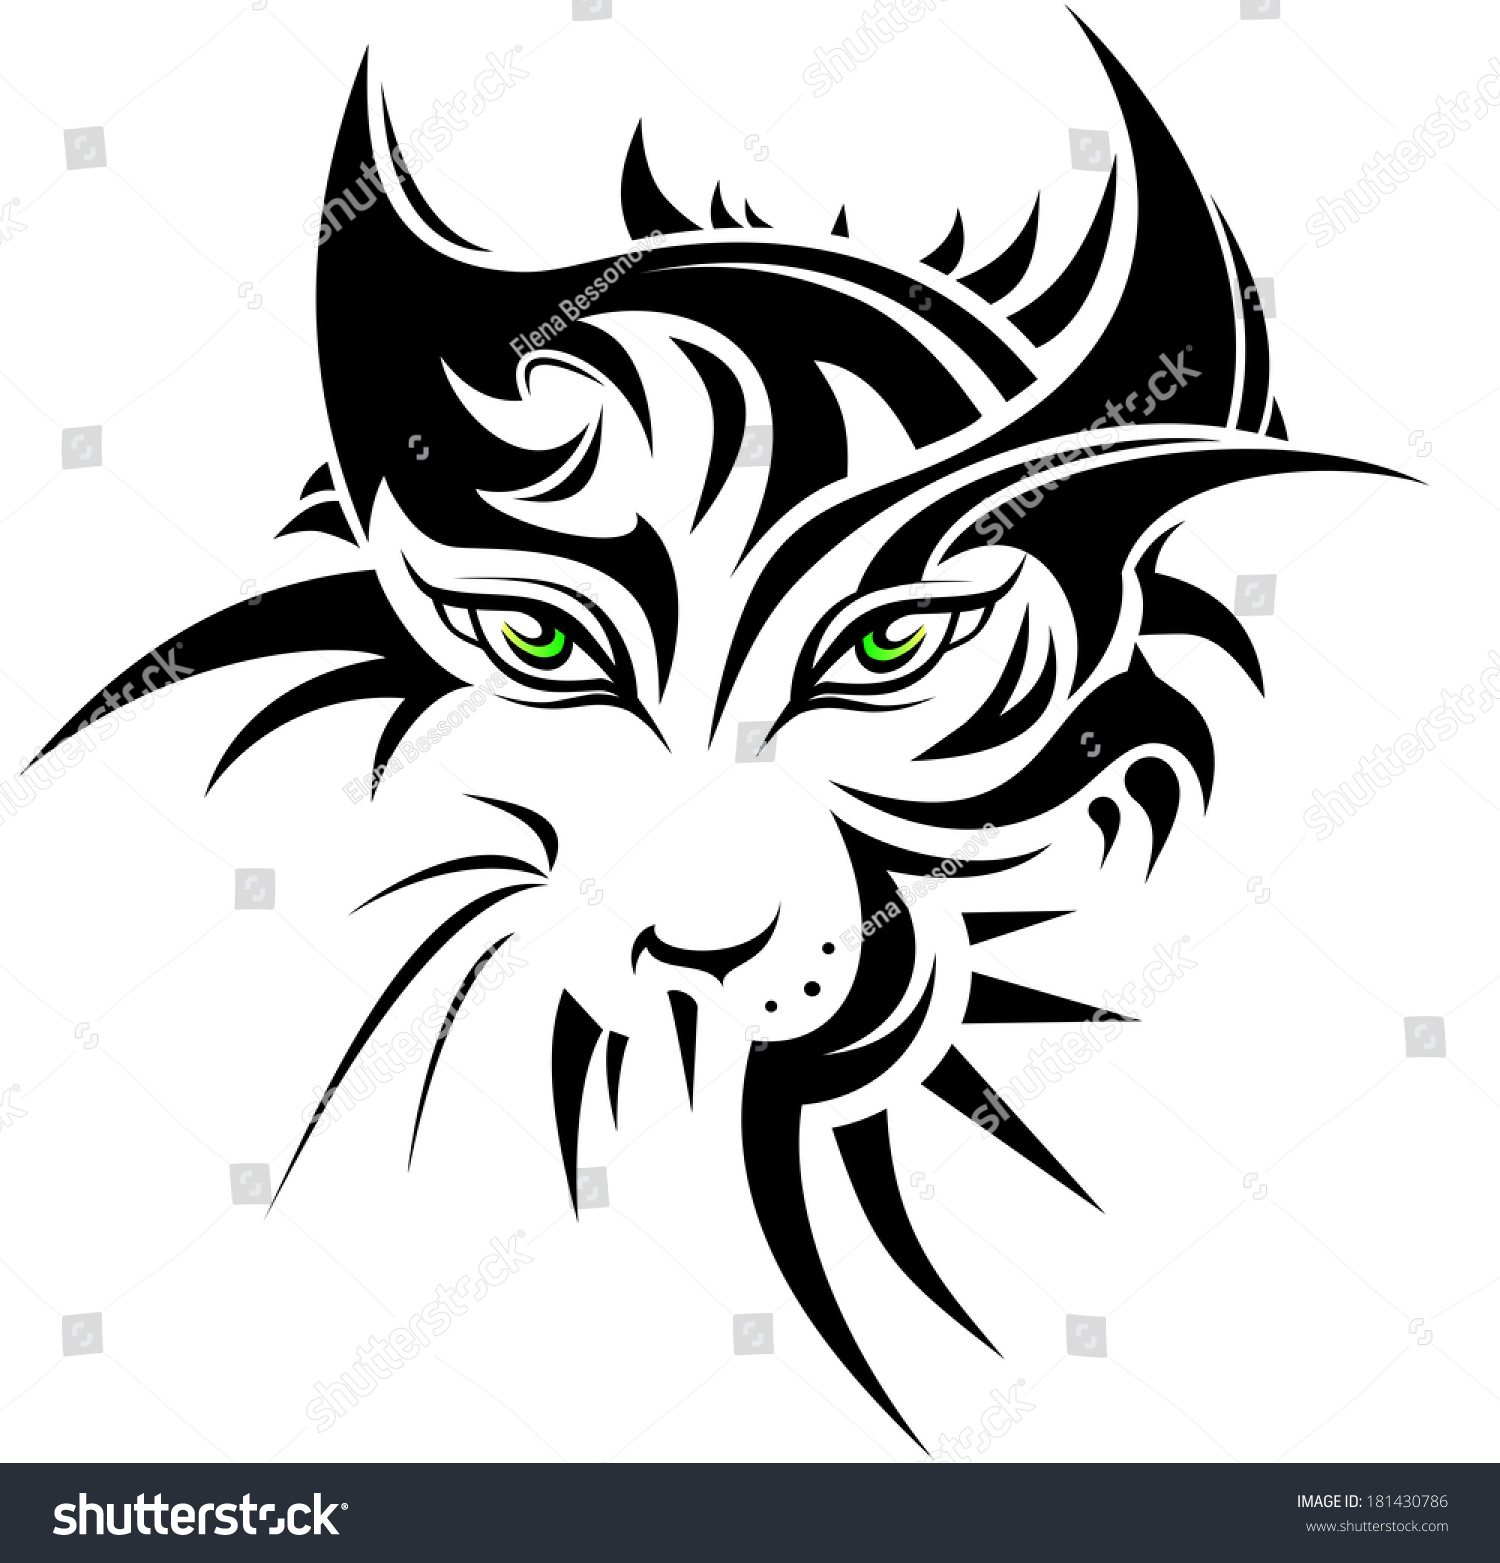 Abstract Tiger Tattoo Style Stock Vector 181430786